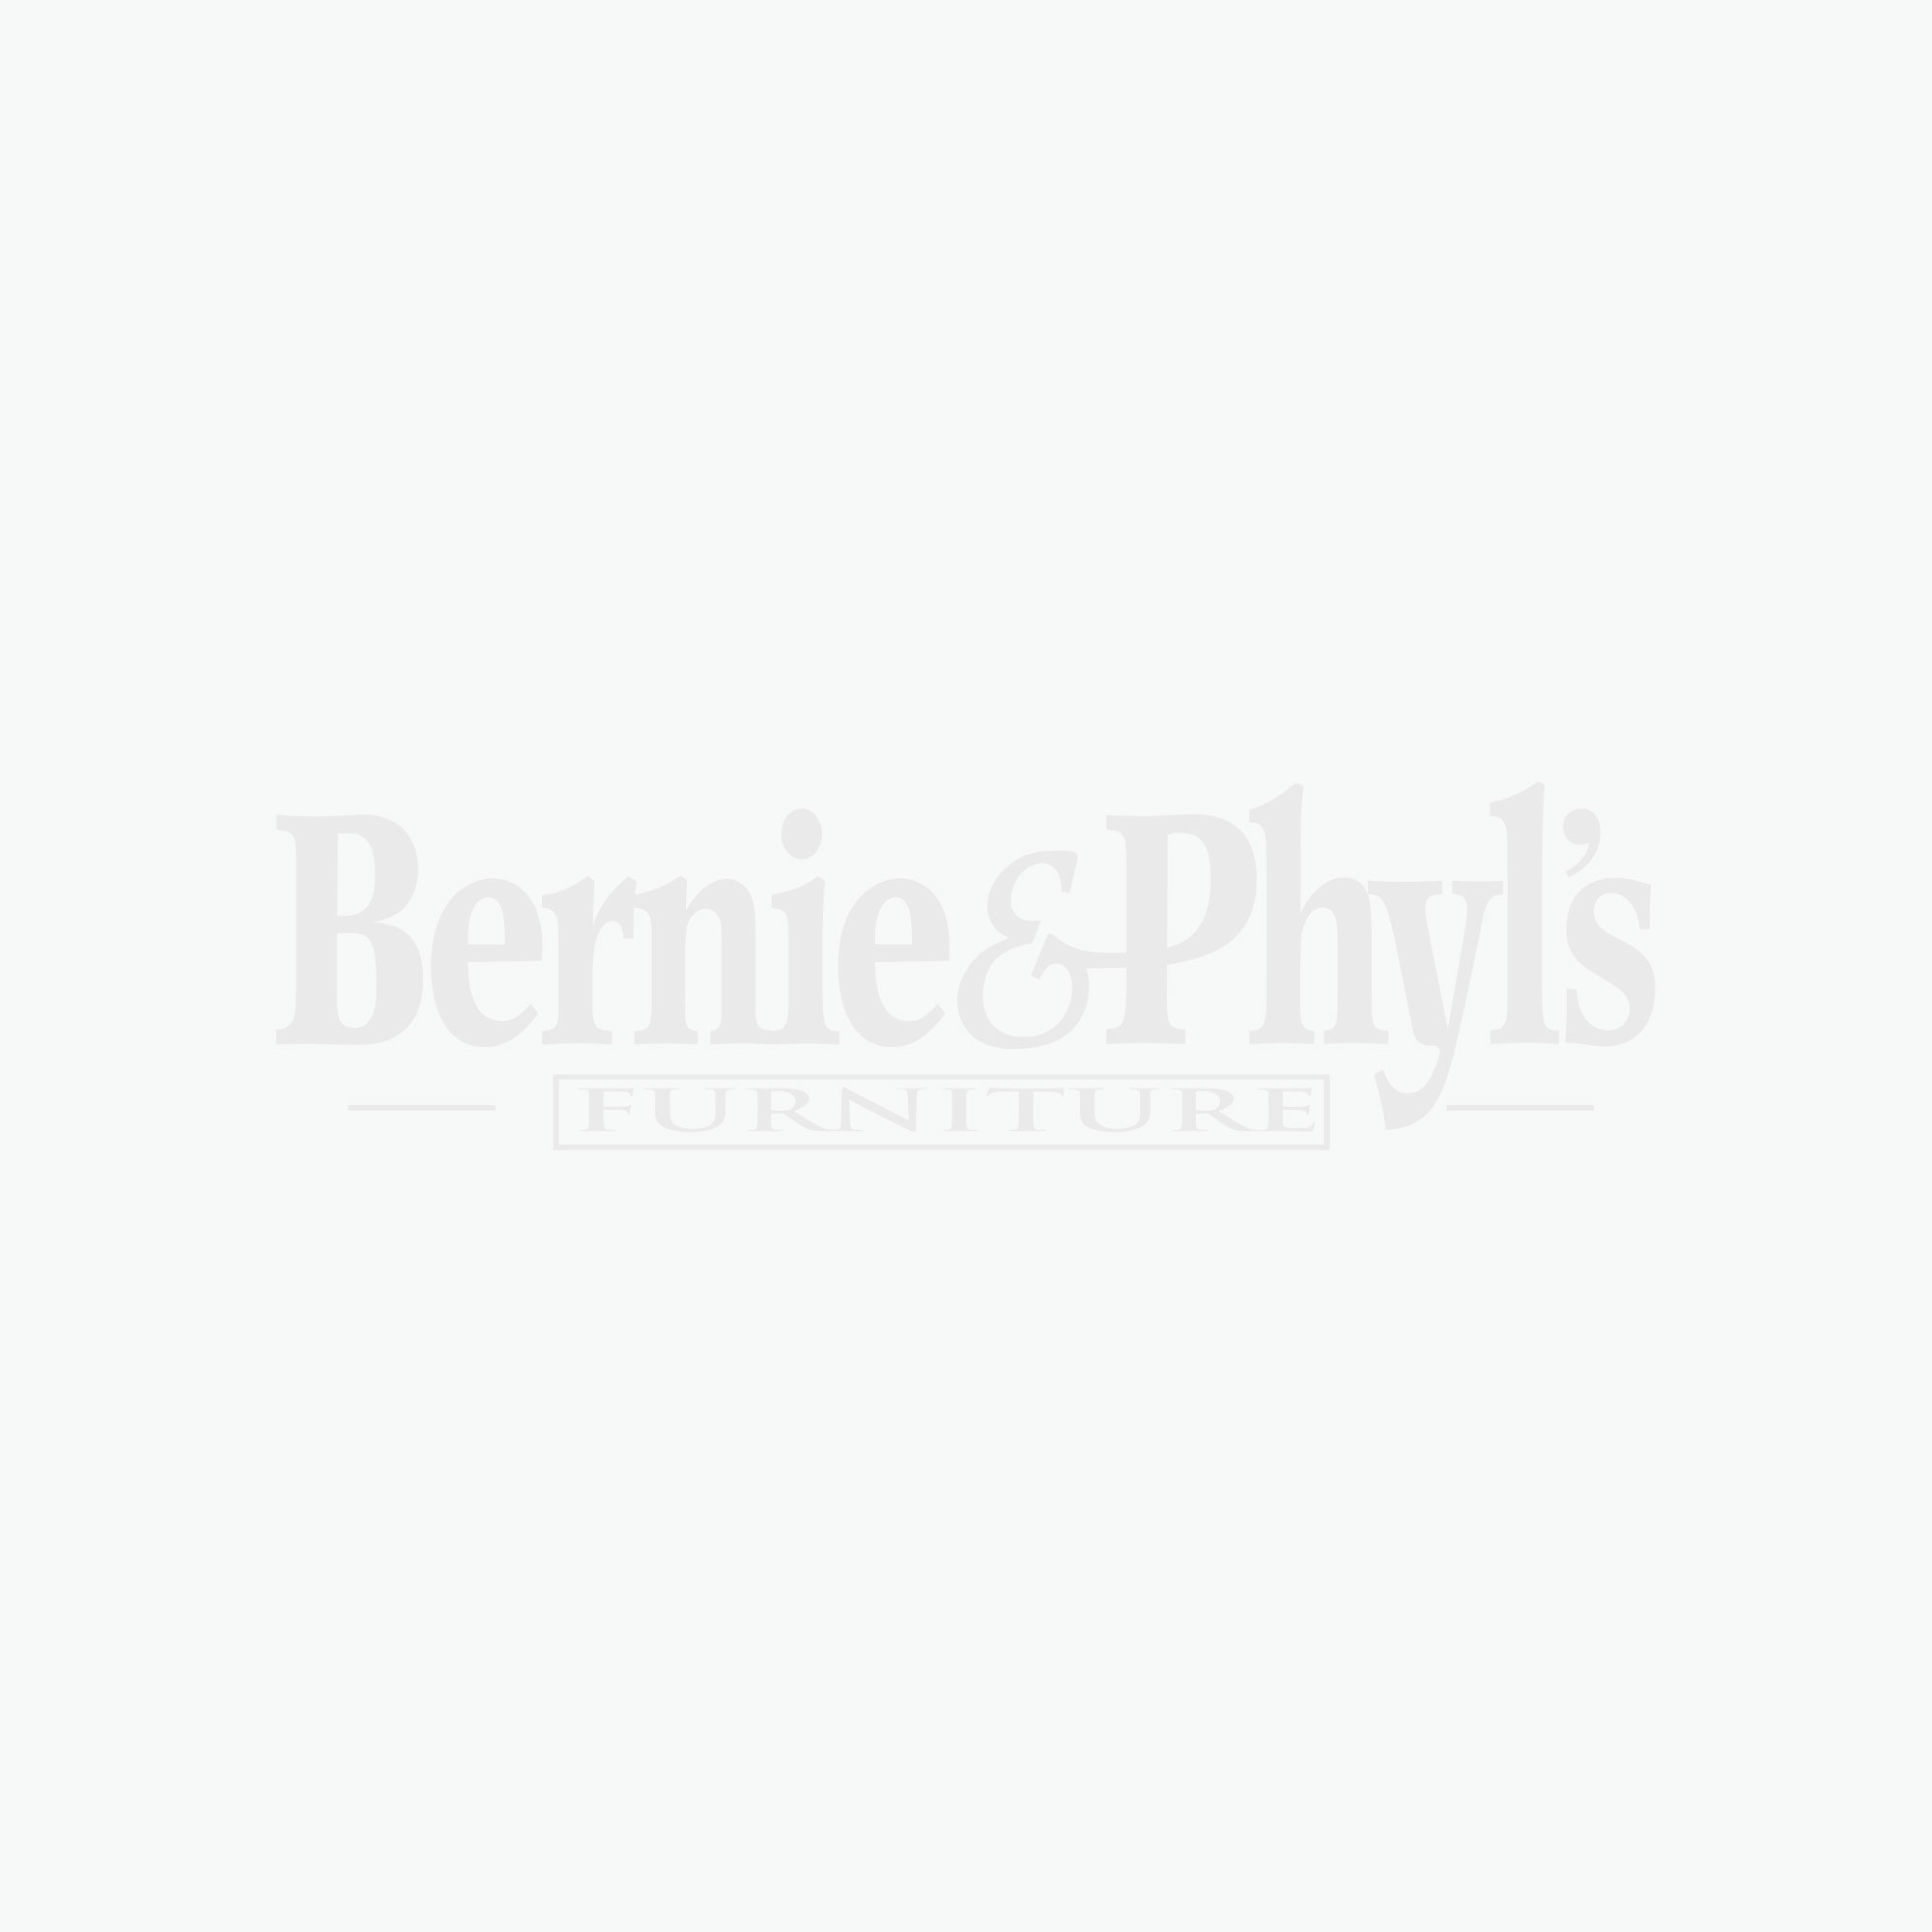 adirondack server bernie phyl s furniture by